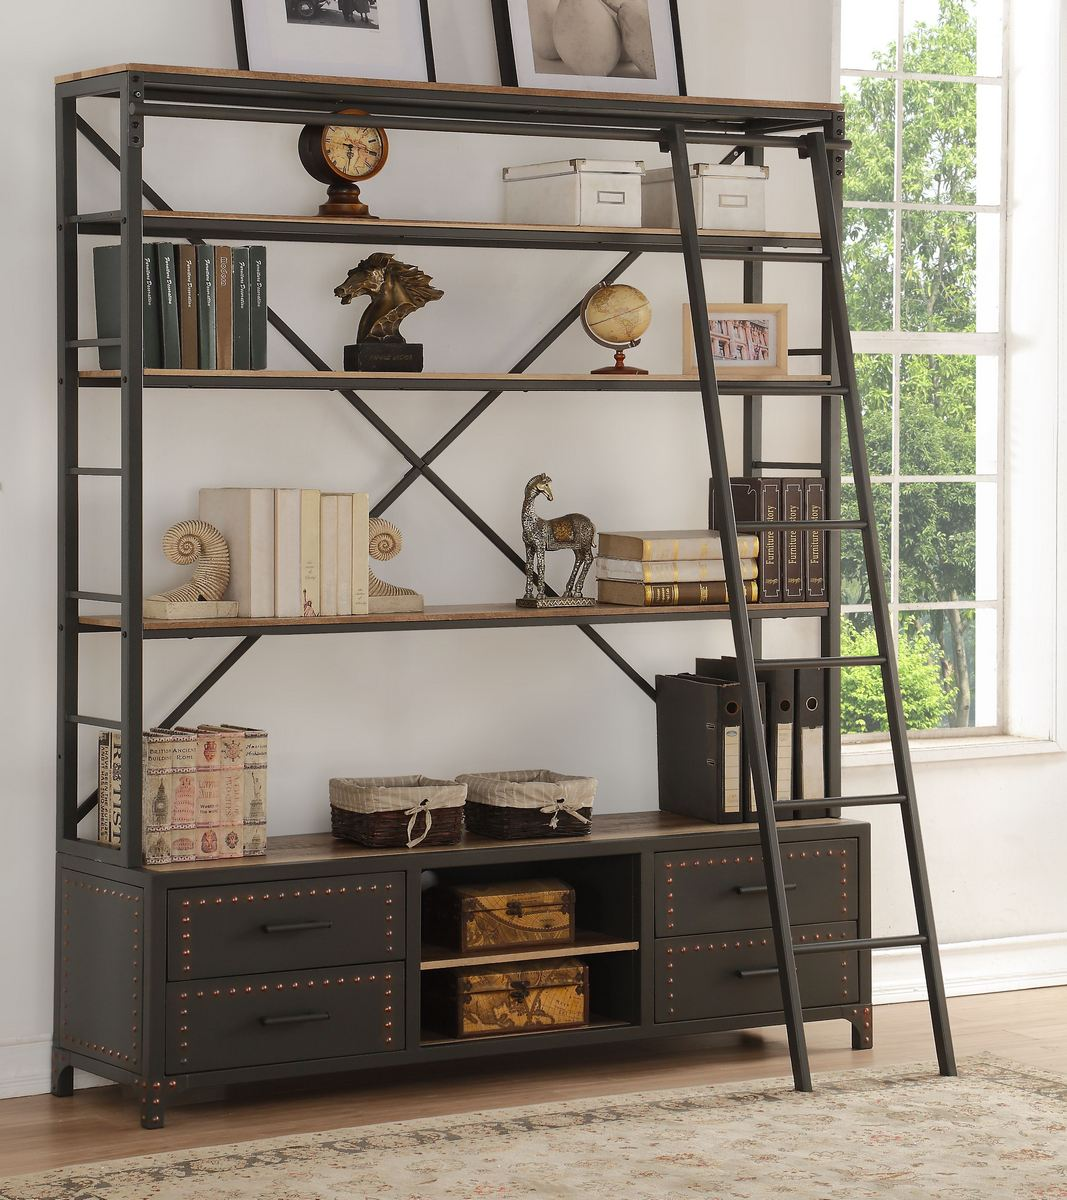 Actaki Bookshelf & Ladder in Sandy Gray - Acme Furniture 92436